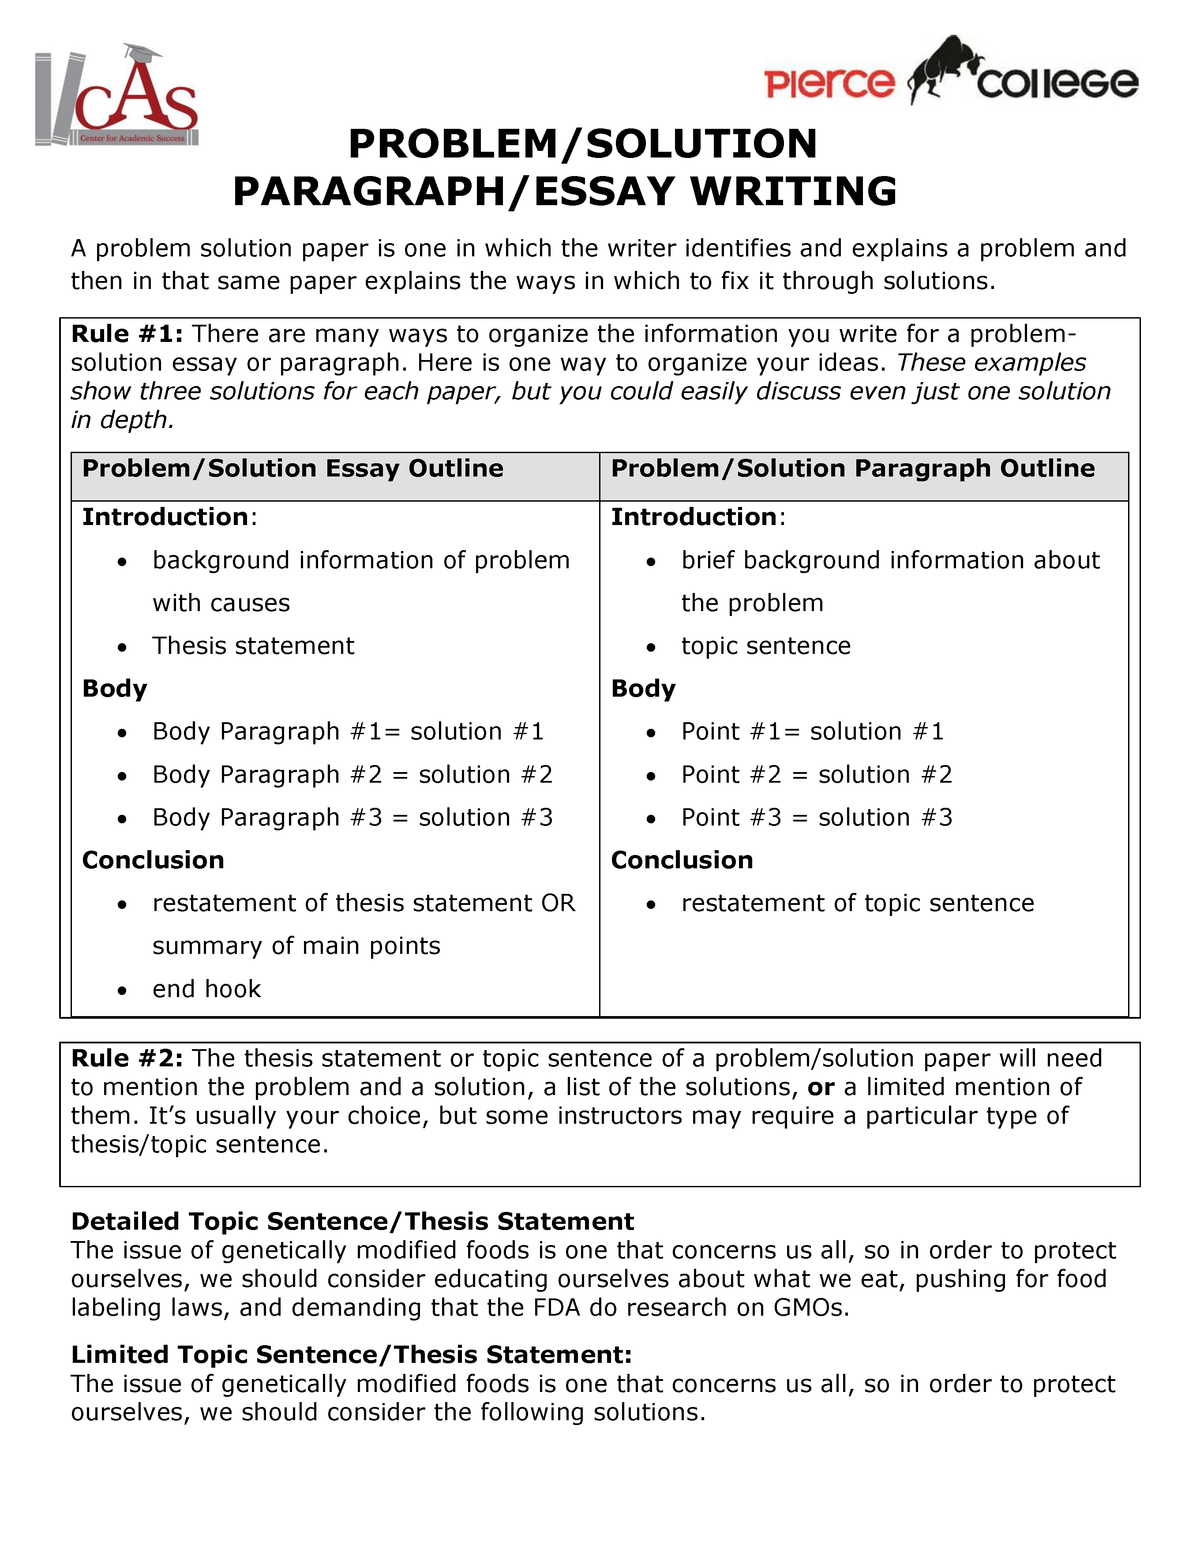 English Essay Writing Examples  Topics For High School Essays also Thesis Statement Descriptive Essay Problem Solution Paragraph Essay Writing  Eng  English  English Essay Examples